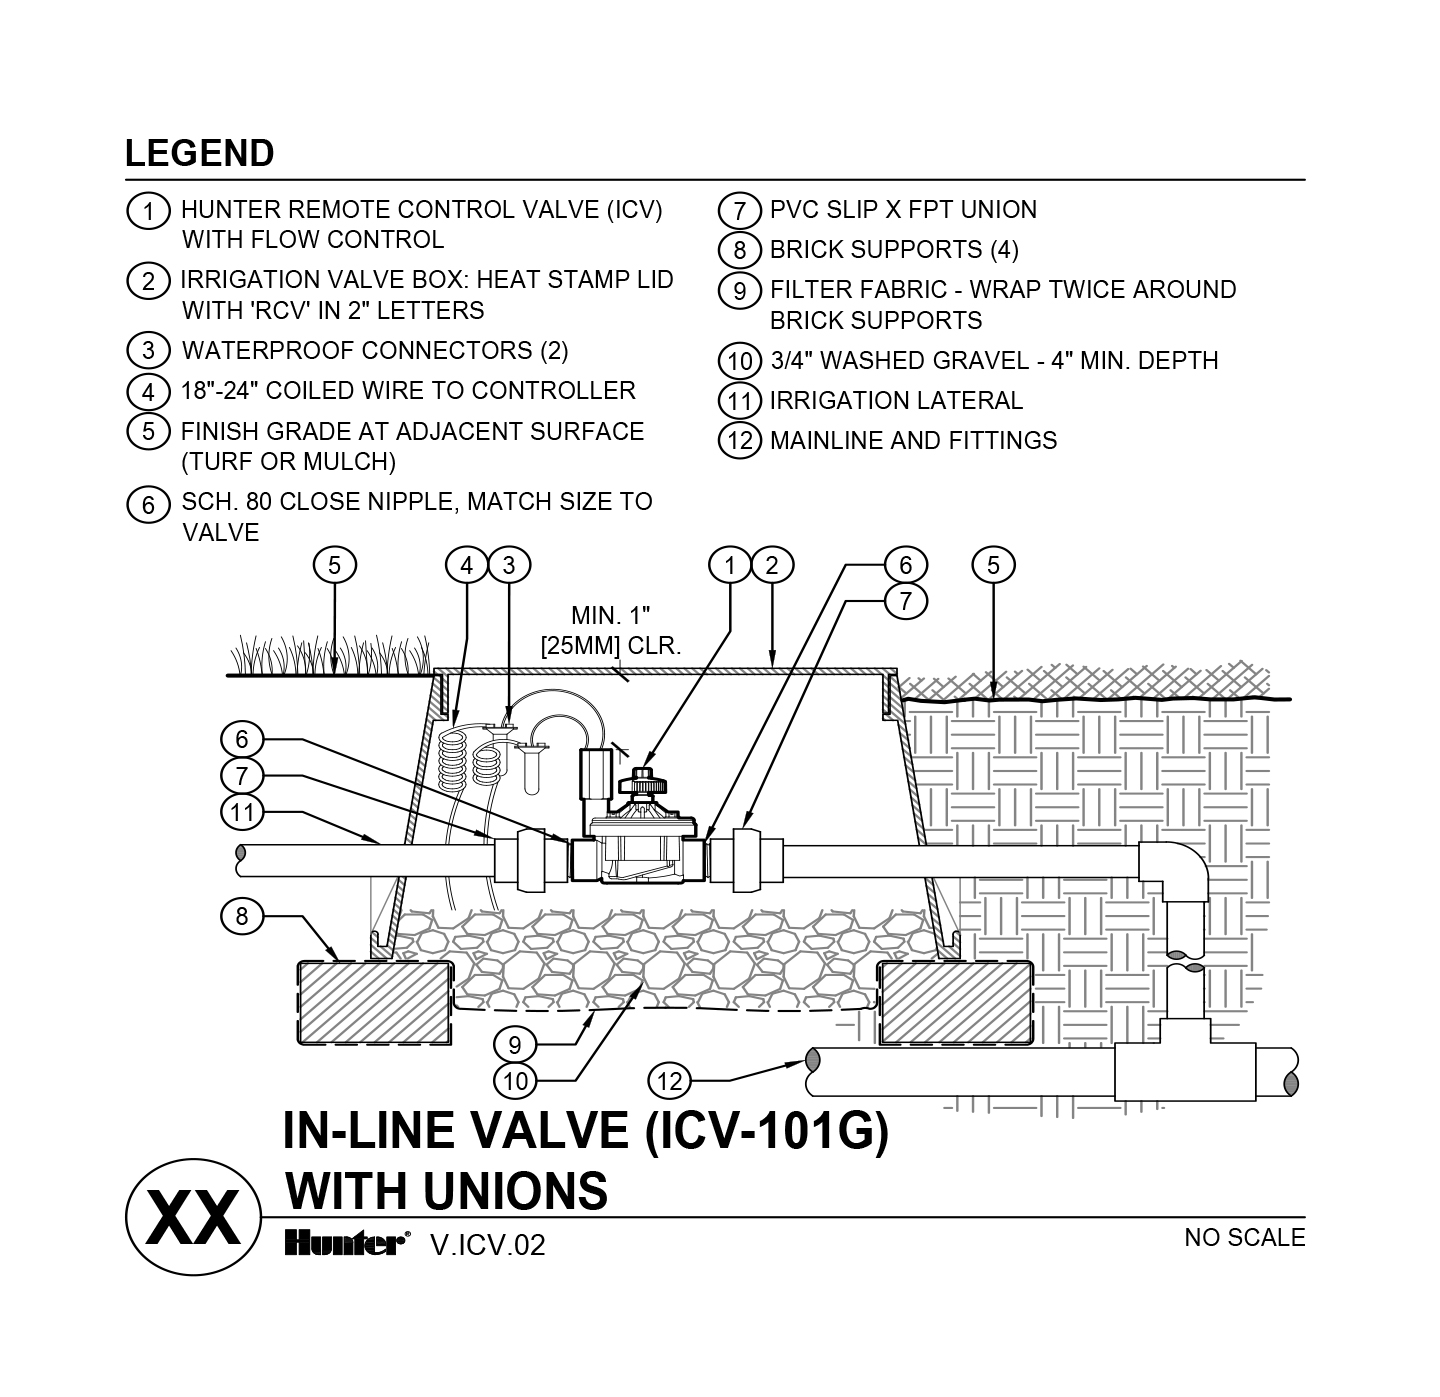 CAD - ICV-101G with unions